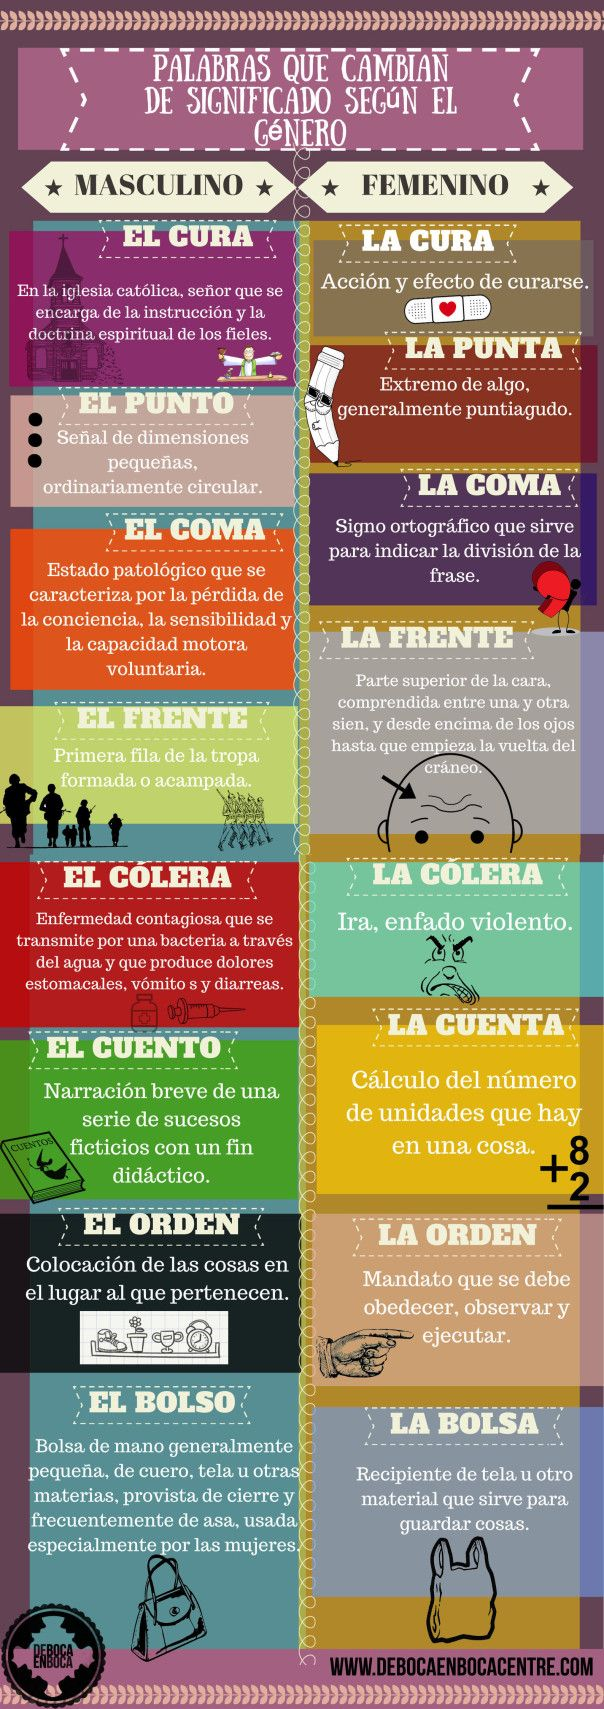 Palabras que cambian con el género | Infographic PLUS accompanying short story | Have students read the story and define the words in the infographic (before showing it to them) with context clues, then share the infographic.